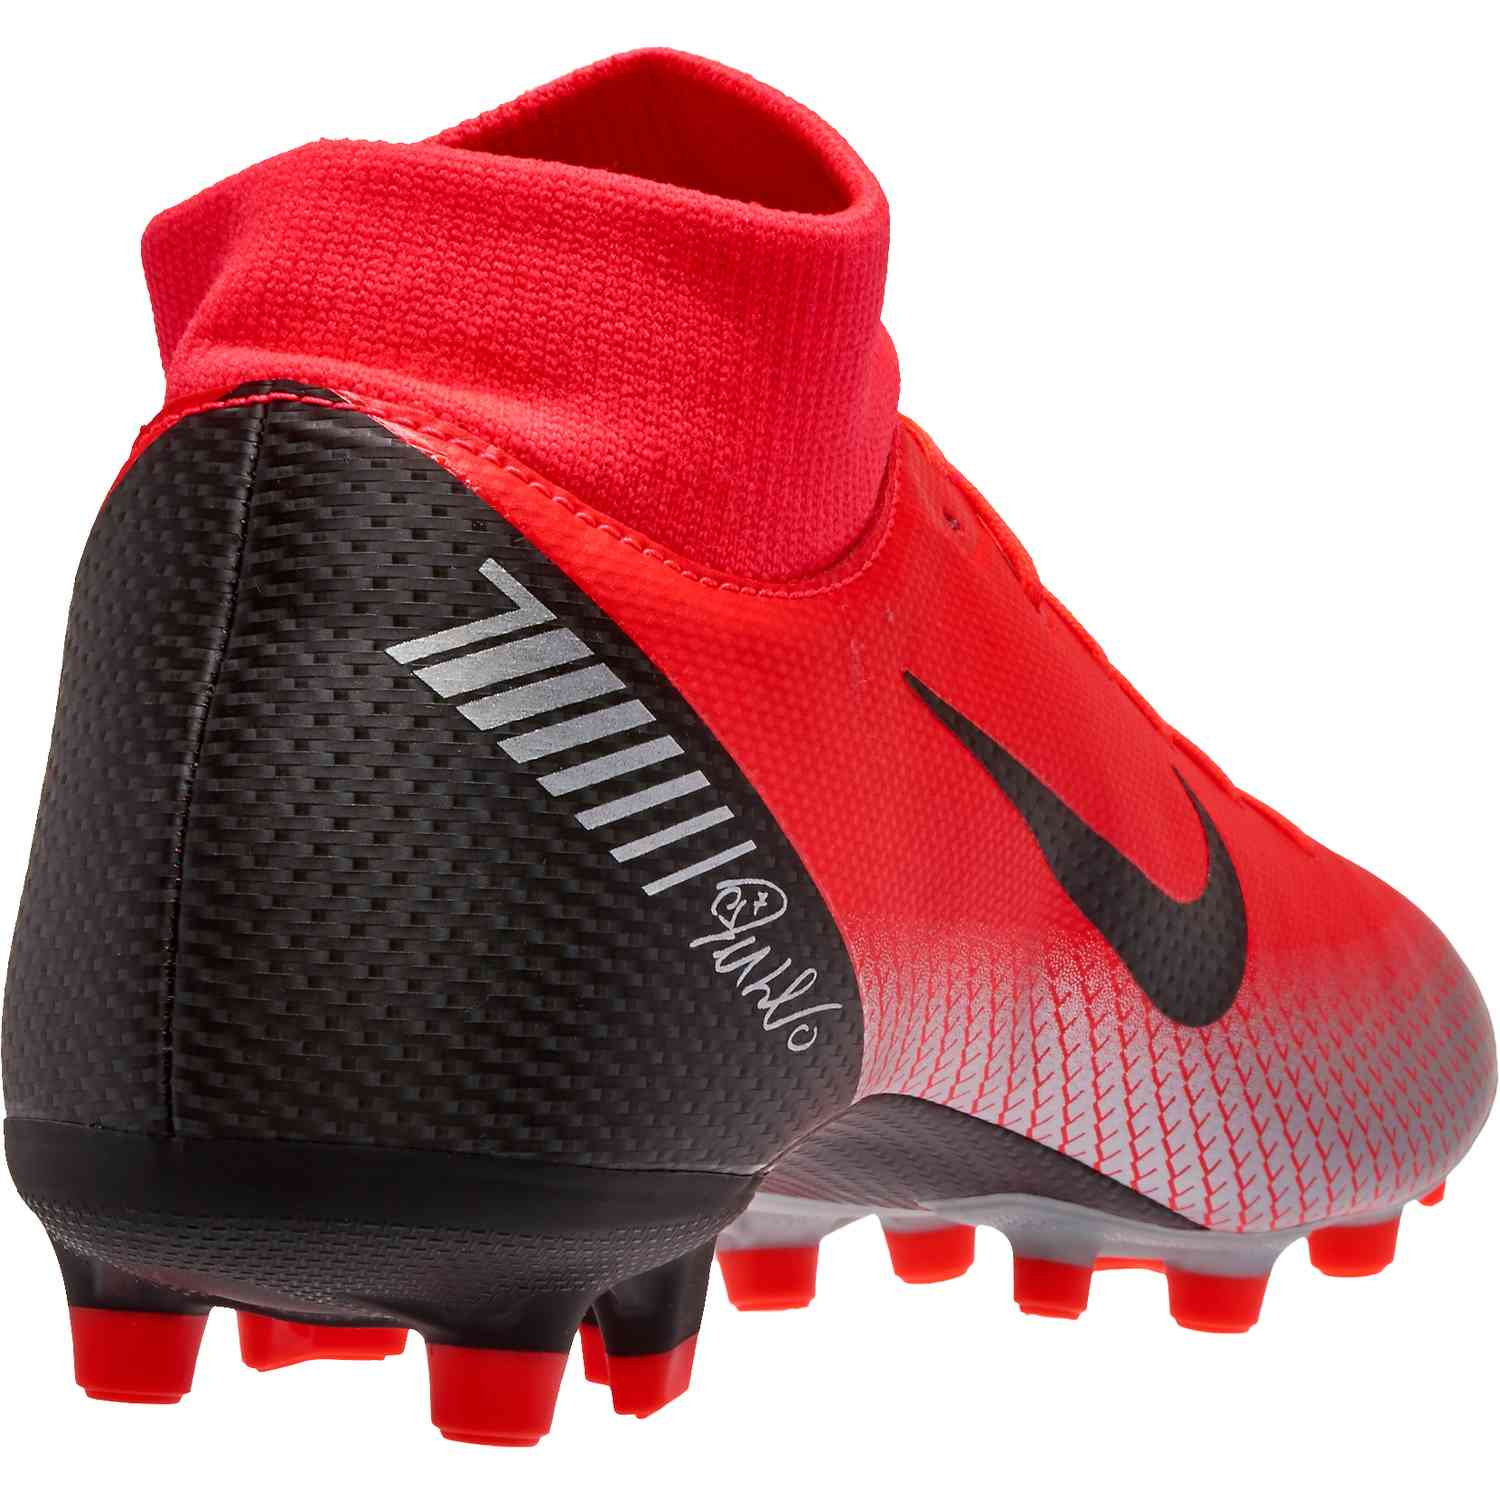 new arrival 9e0be 23dc5 Nike CR7 Mercurial Superfly 6 Academy FG – Chapter 7